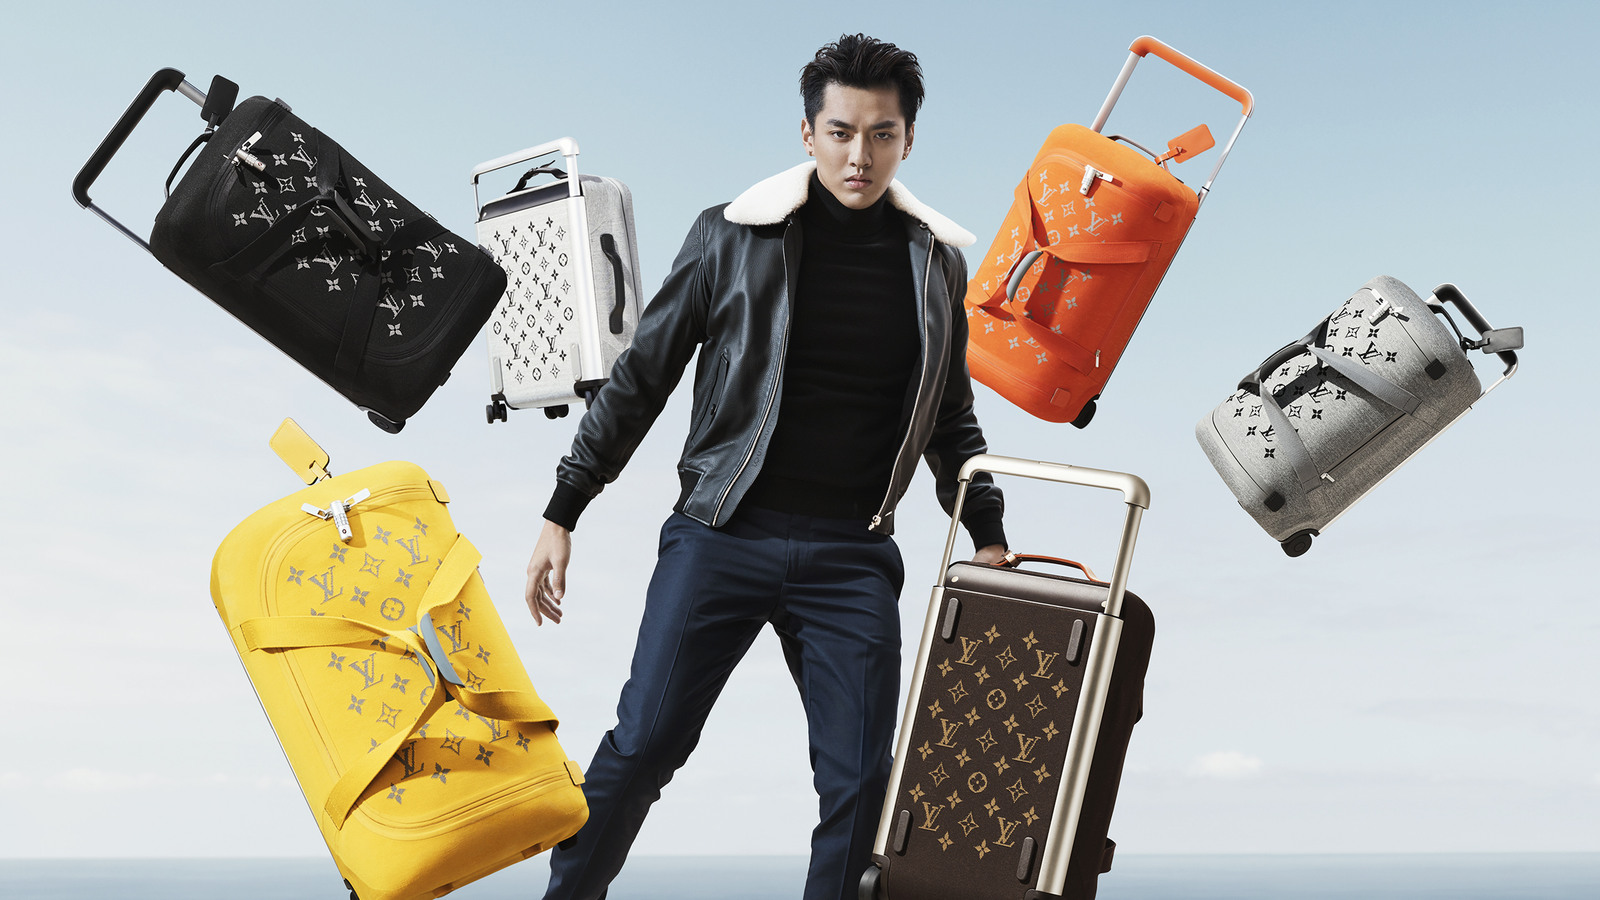 Louis Vuitton Horizon Soft Rolling Luggage Collection By Marc Newson